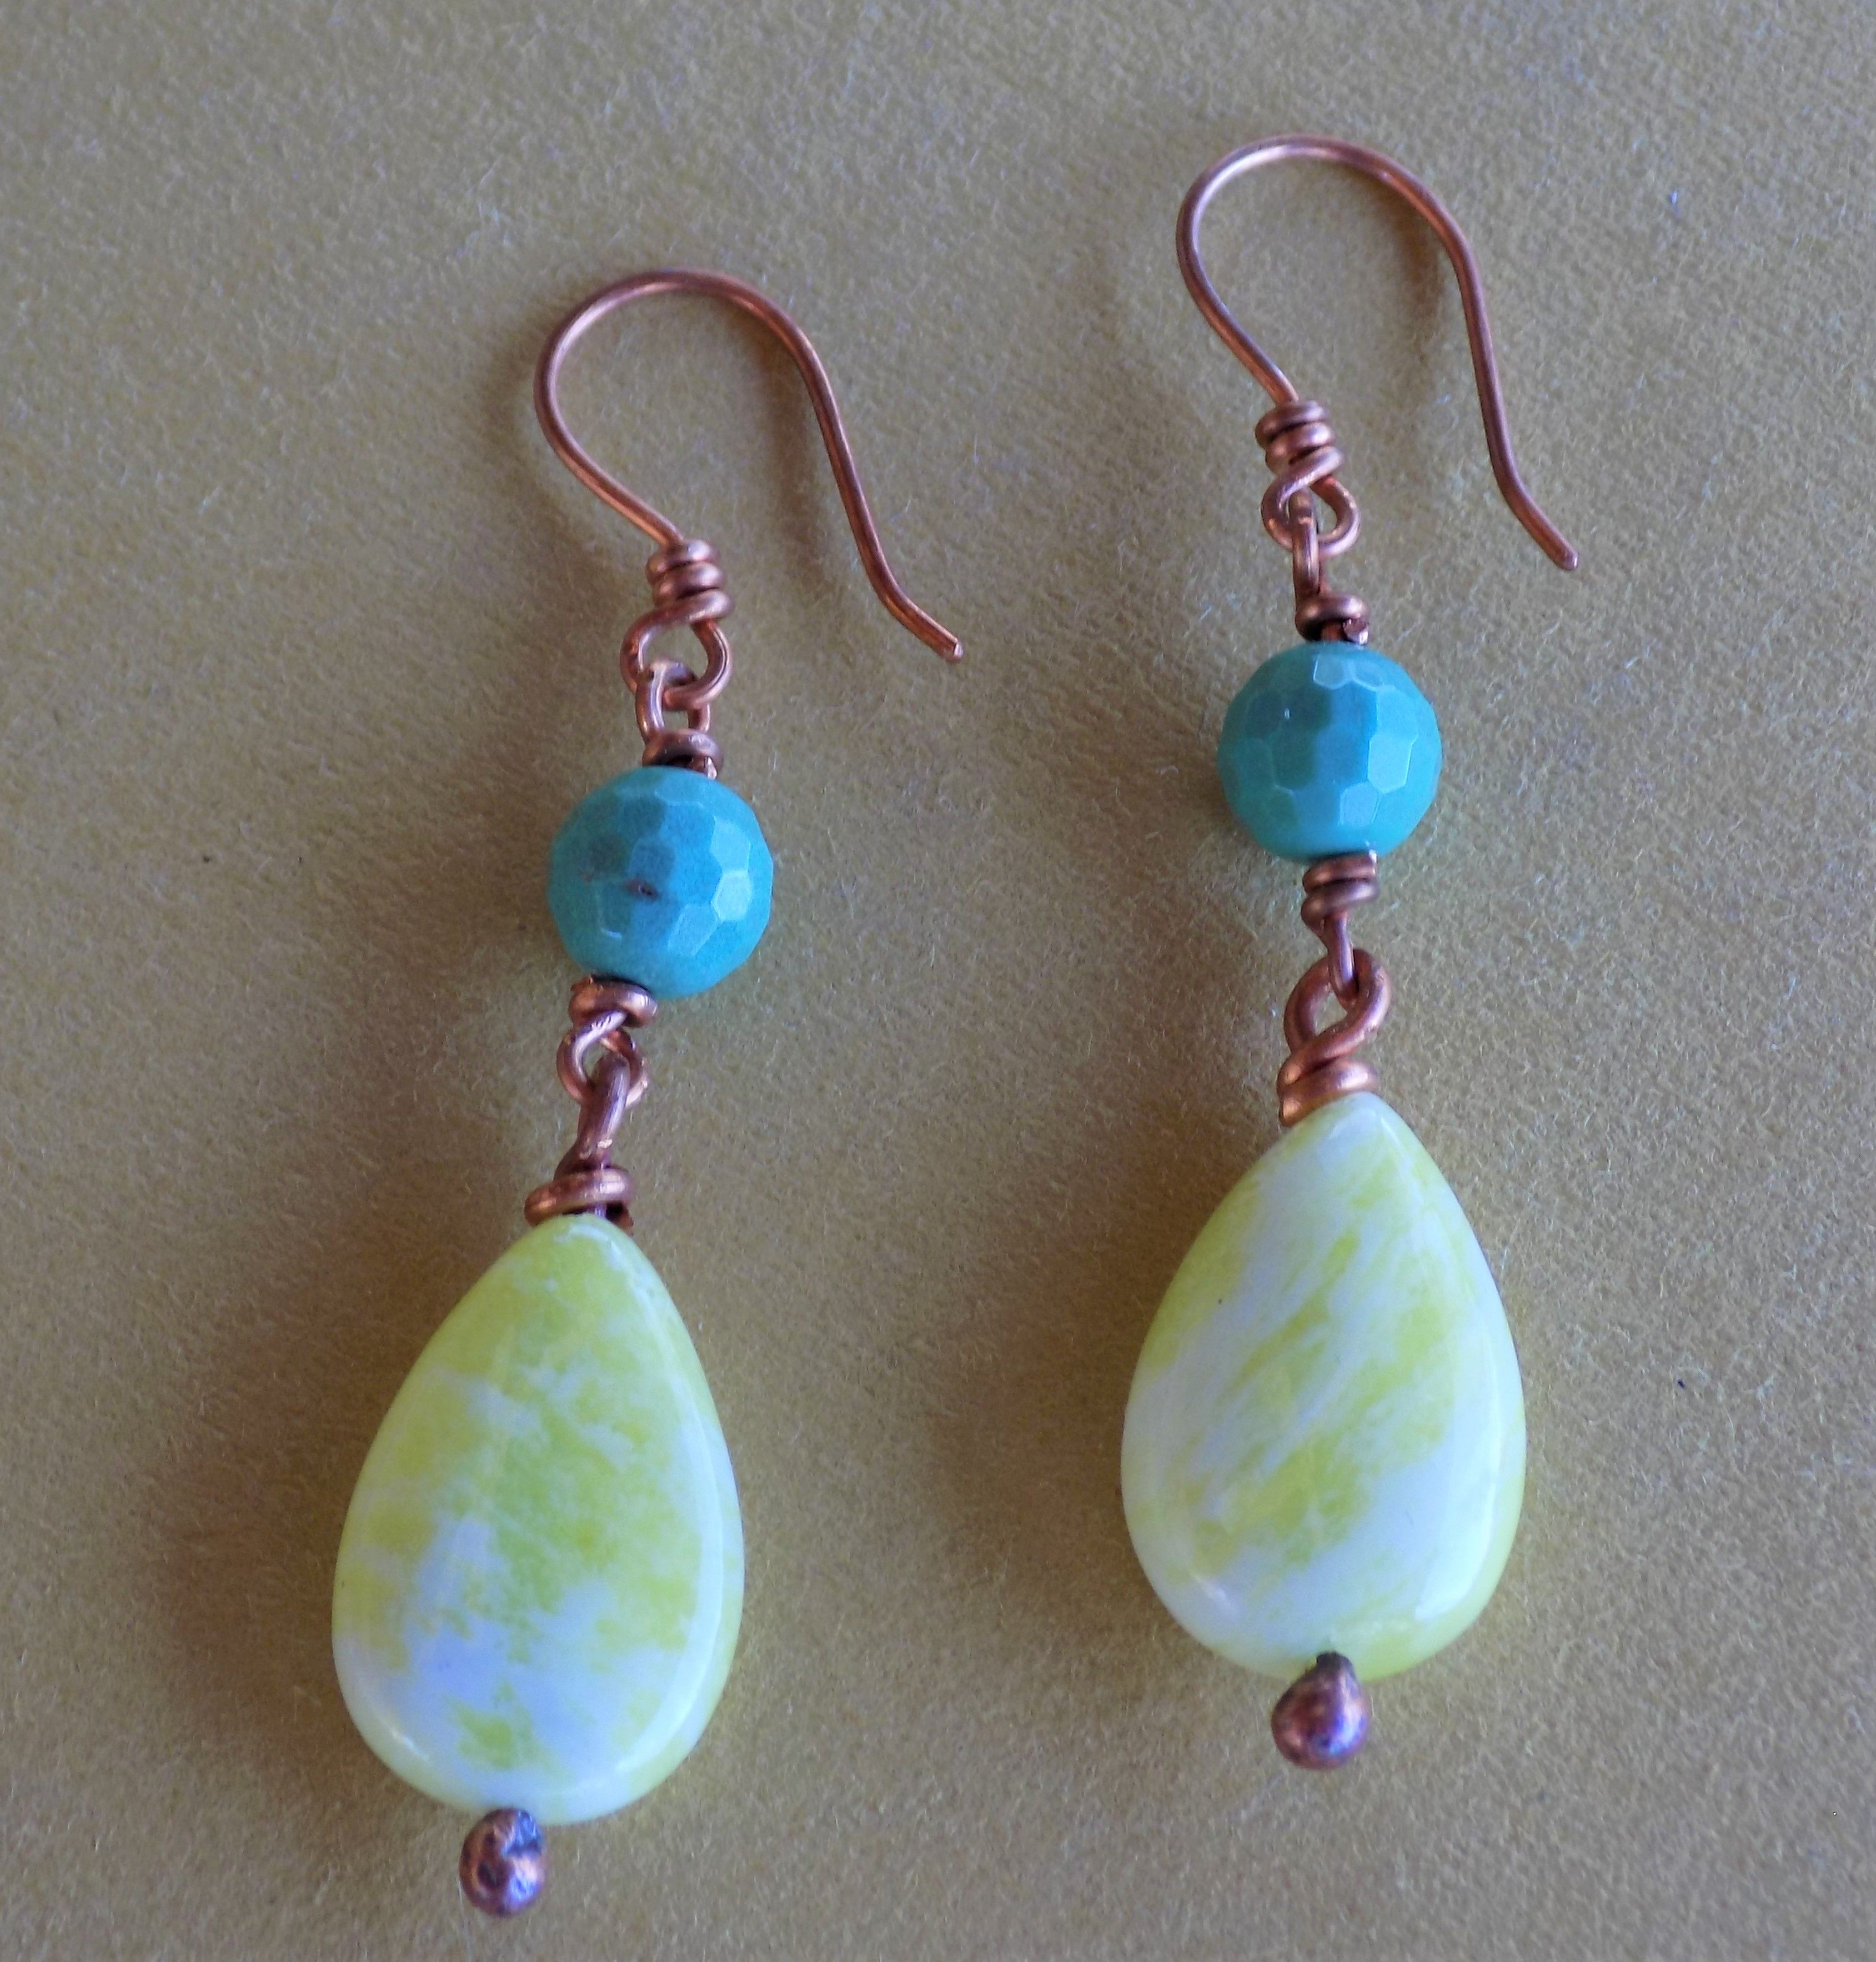 The color mix of these nice earrings is really bright and colorful